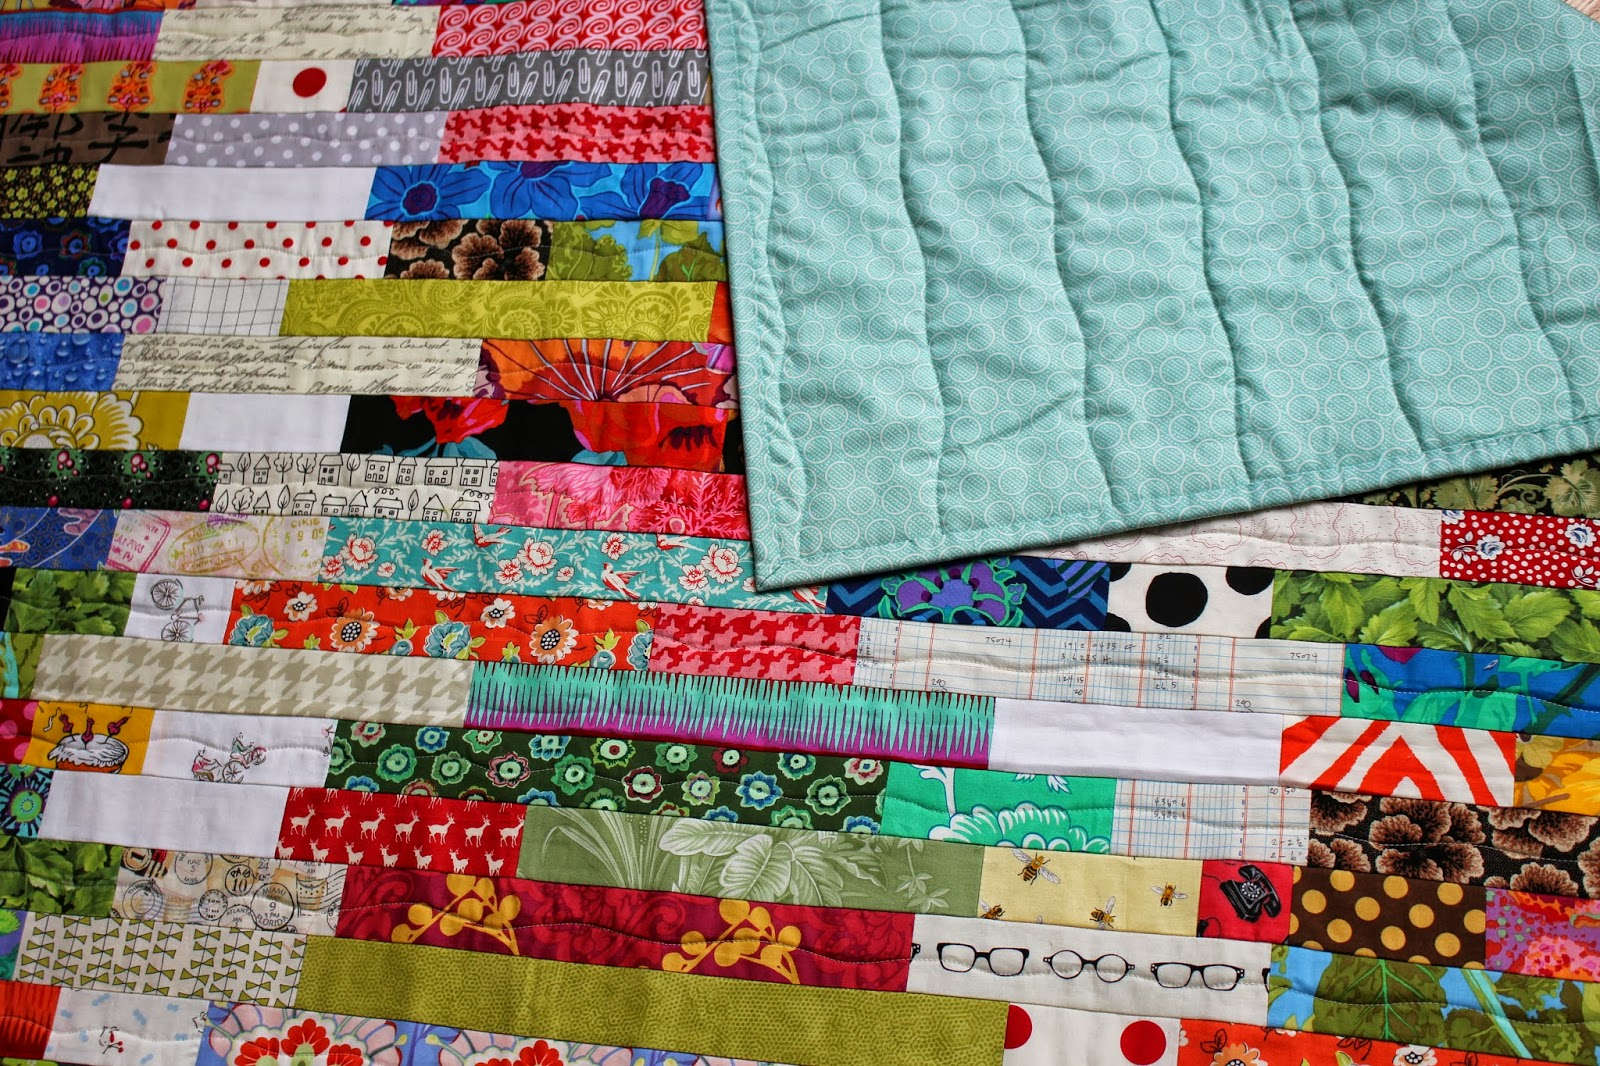 Quilt Patterns For Wedding Gifts : Selvage Blog: Wedding Gift Quilt is Presented!